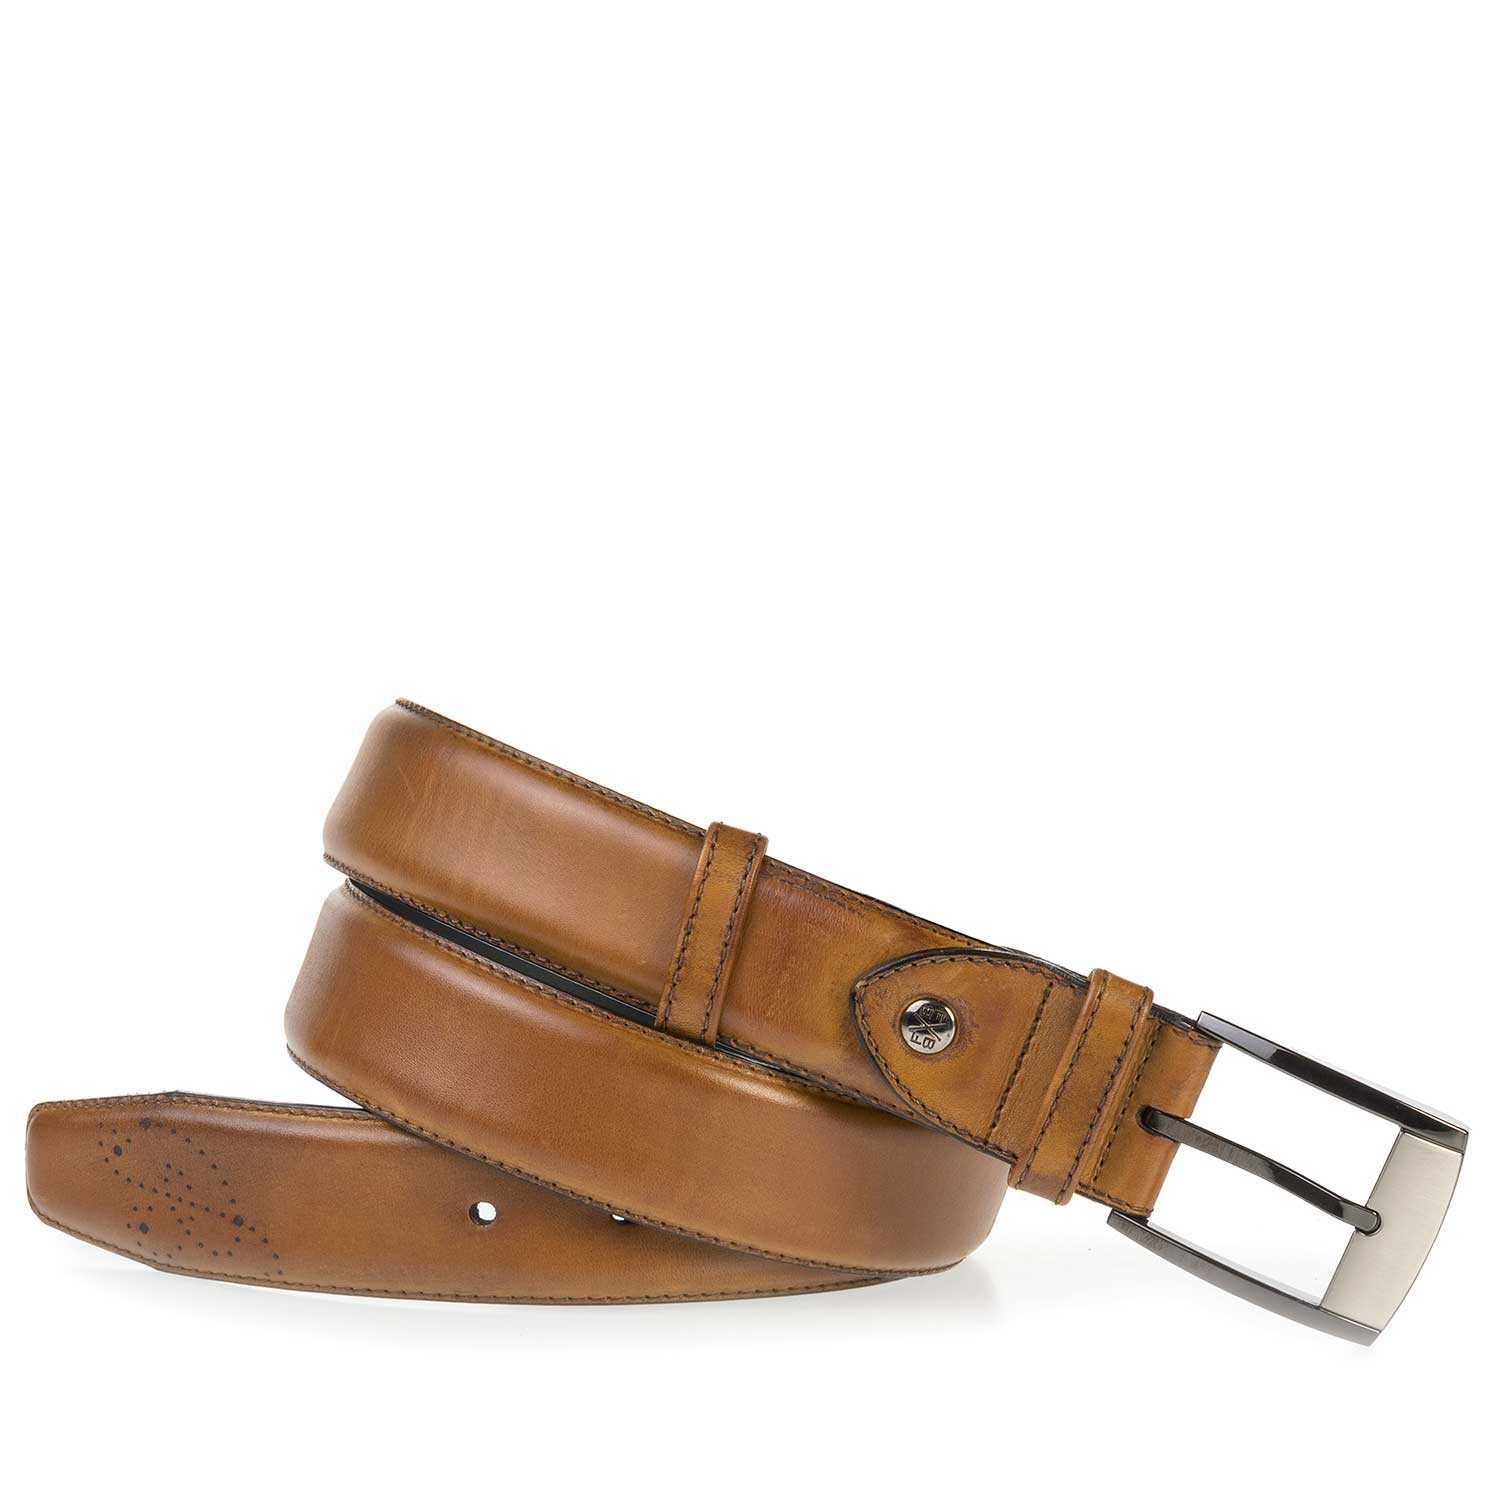 75177/04 - Cognac-coloured, perforated leather belt